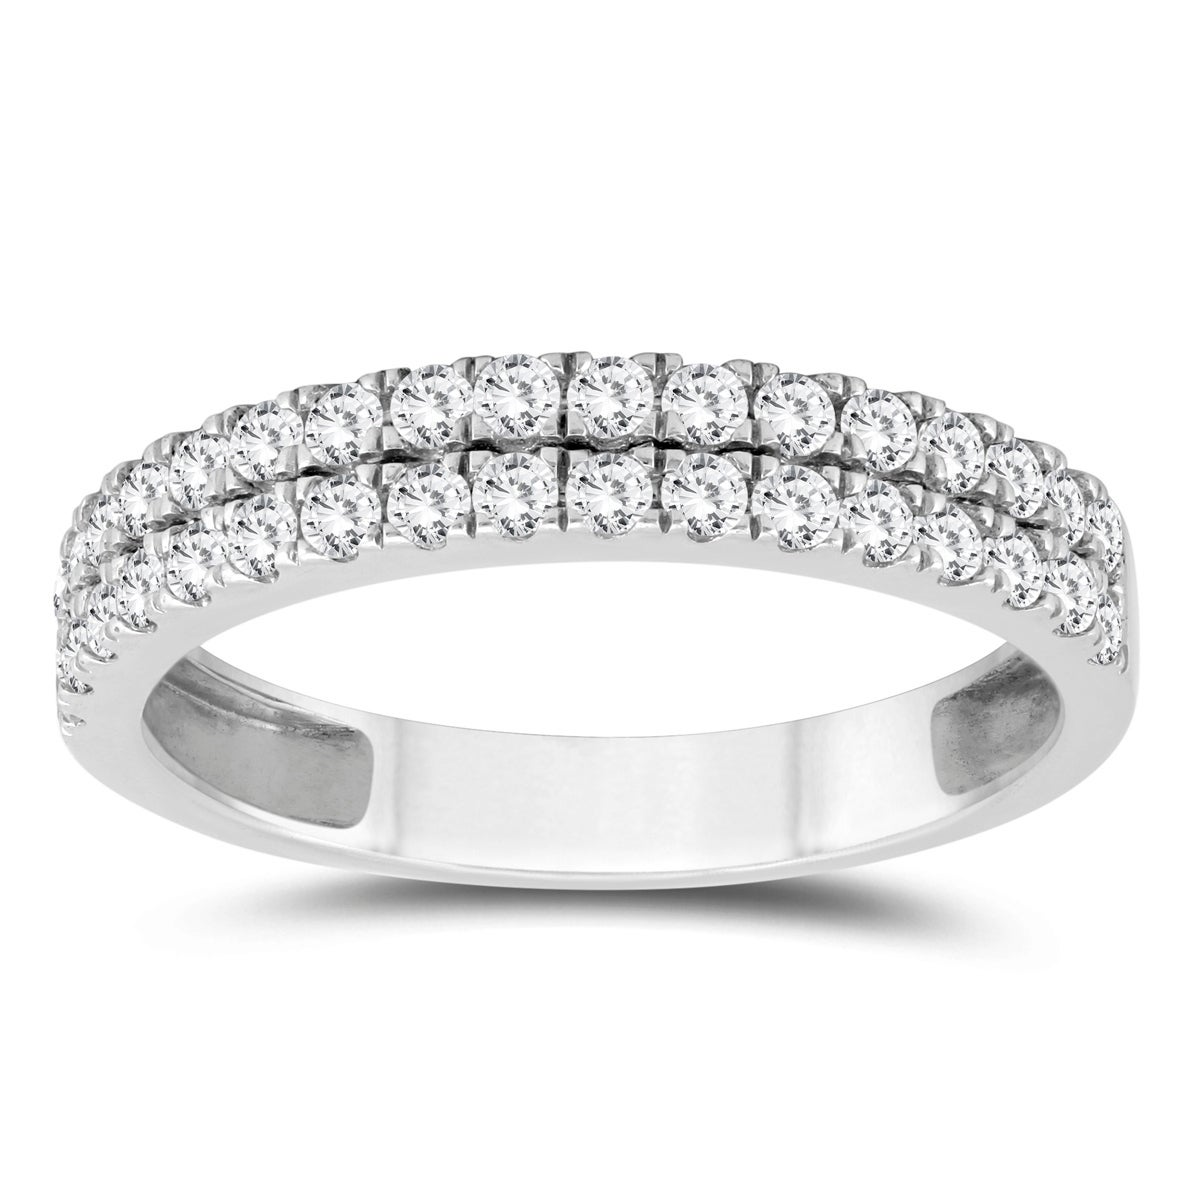 3 4 Carat Tw Double Row Diamond Wedding Band In 10k White Gold On Free Shipping Today 18068215